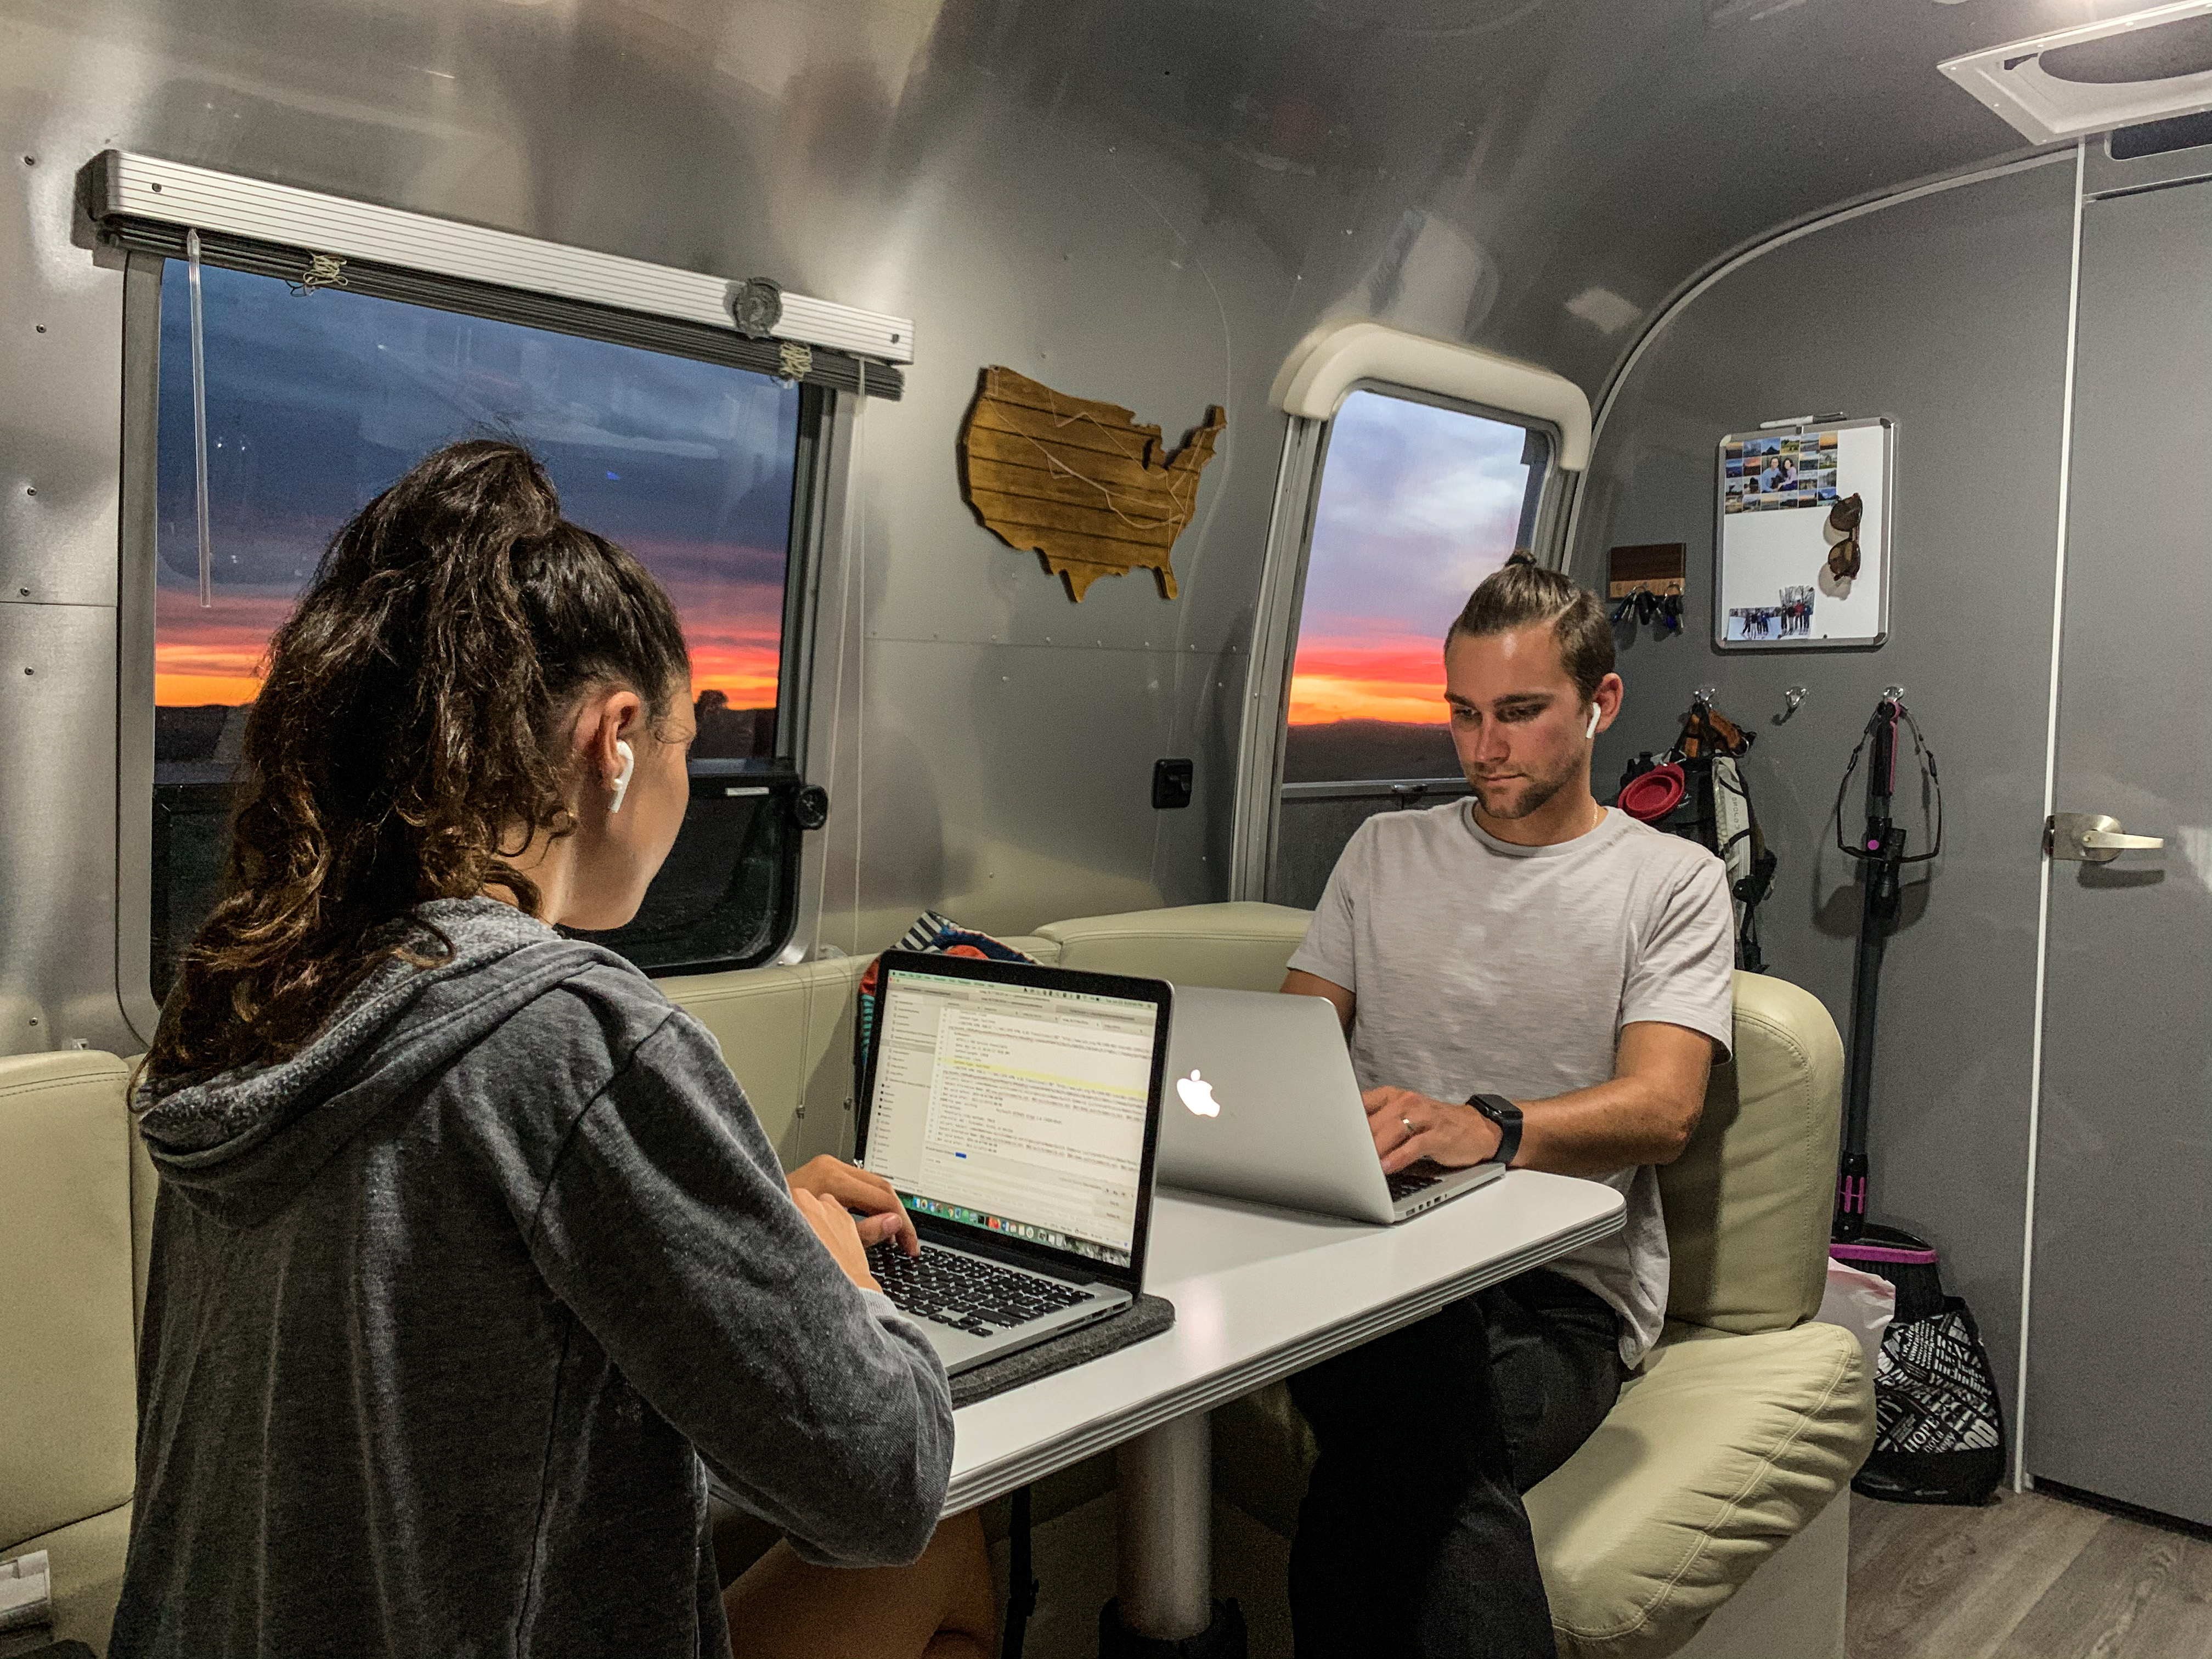 Working from the Airstream